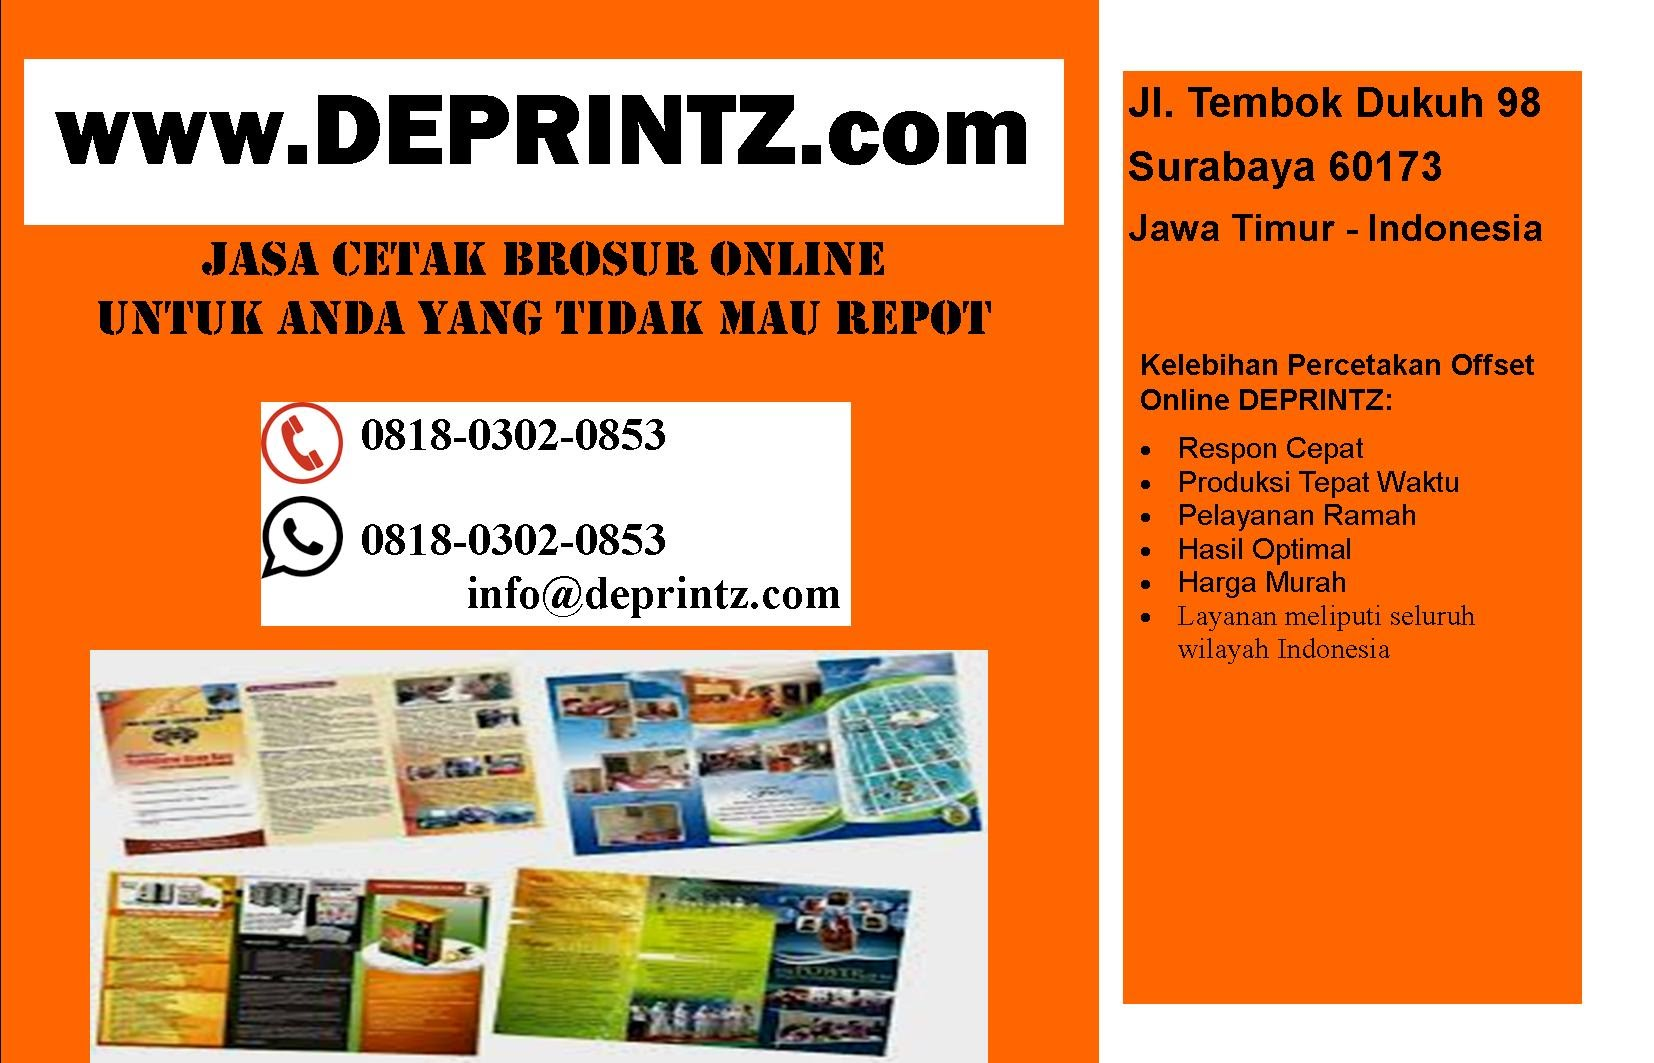 Call Wa 0818 0302 0853 Jasa Mesin Digital Printing Call Wa 0818